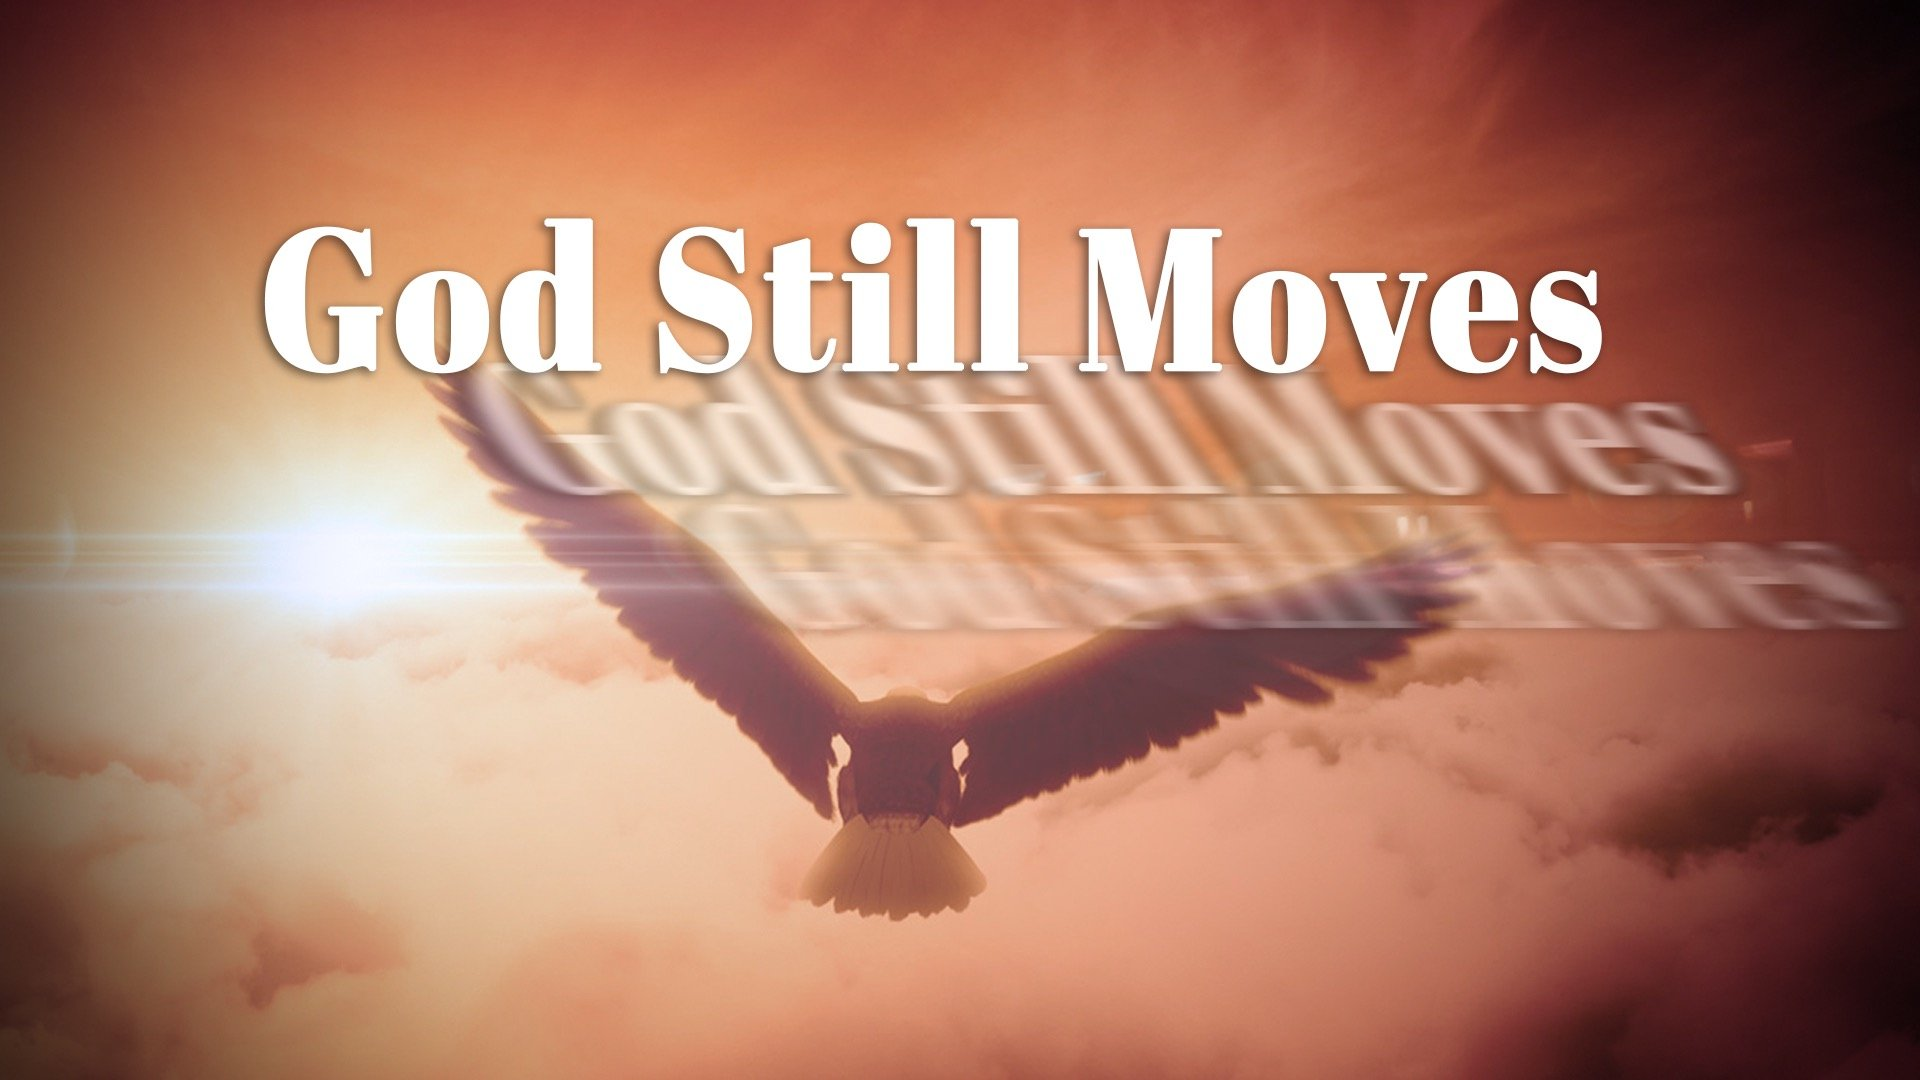 God Still Moves